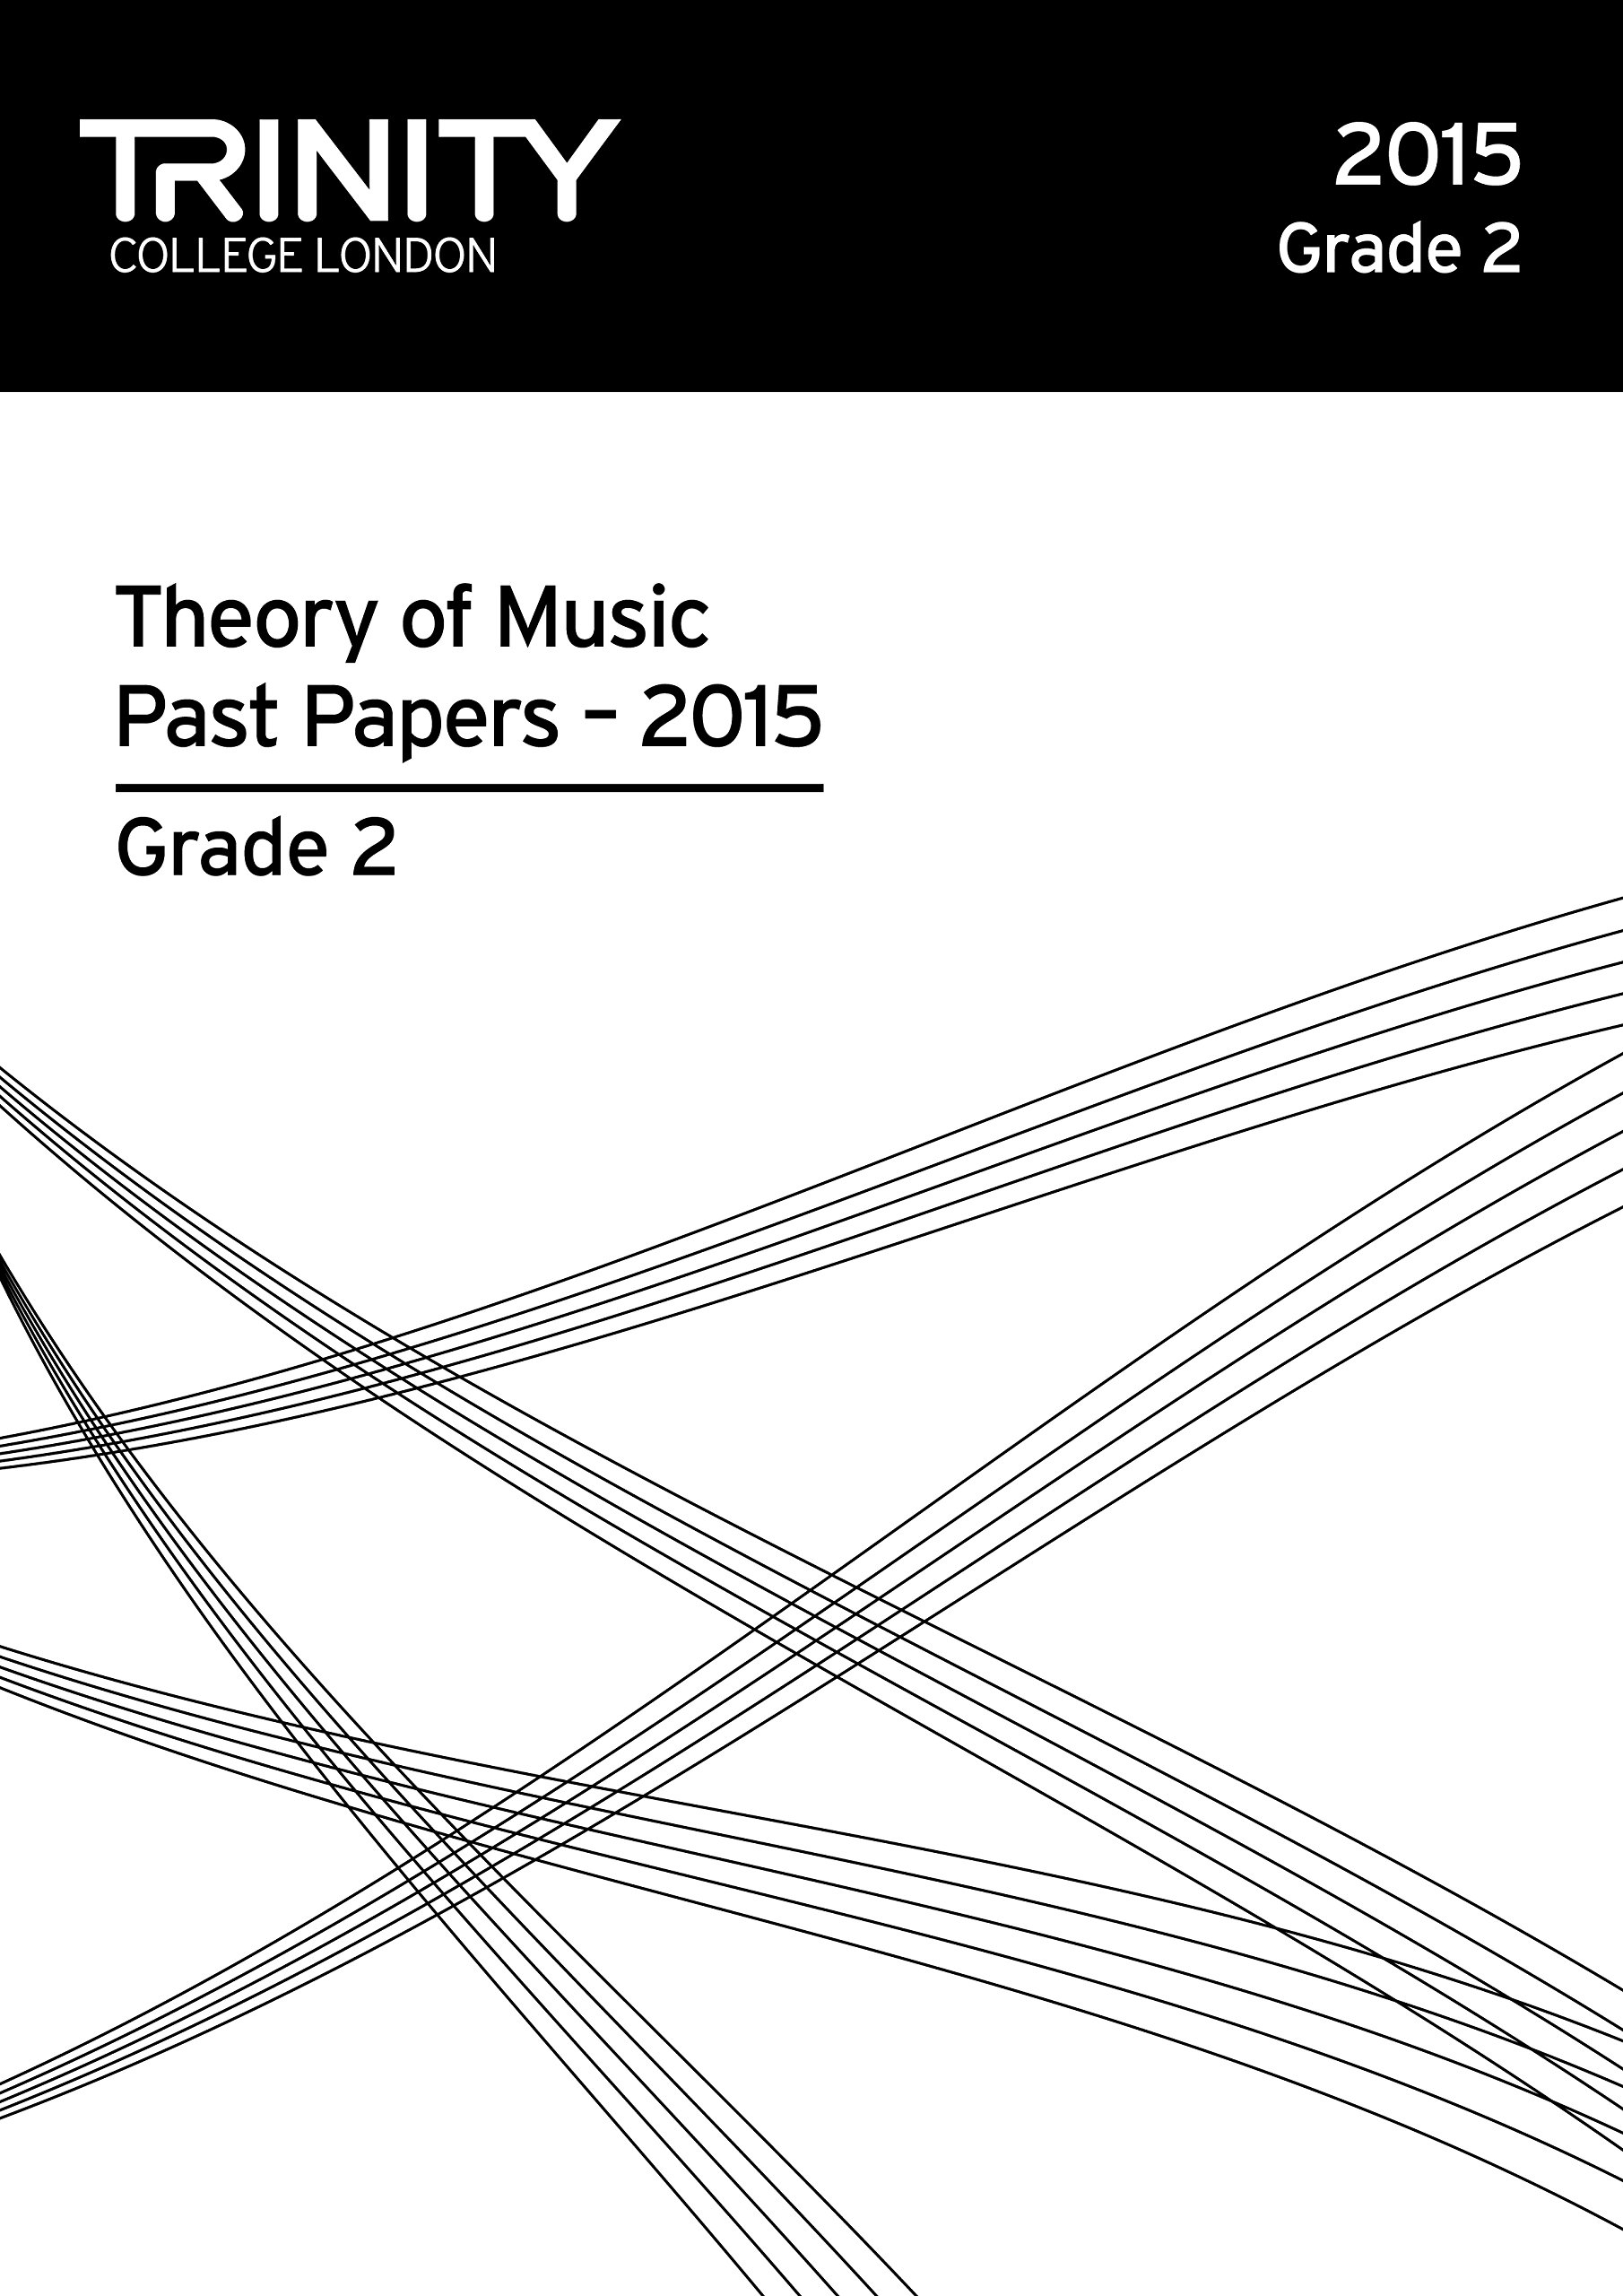 Trinity College London Theory of Music Past Paper (2015) Grade 2